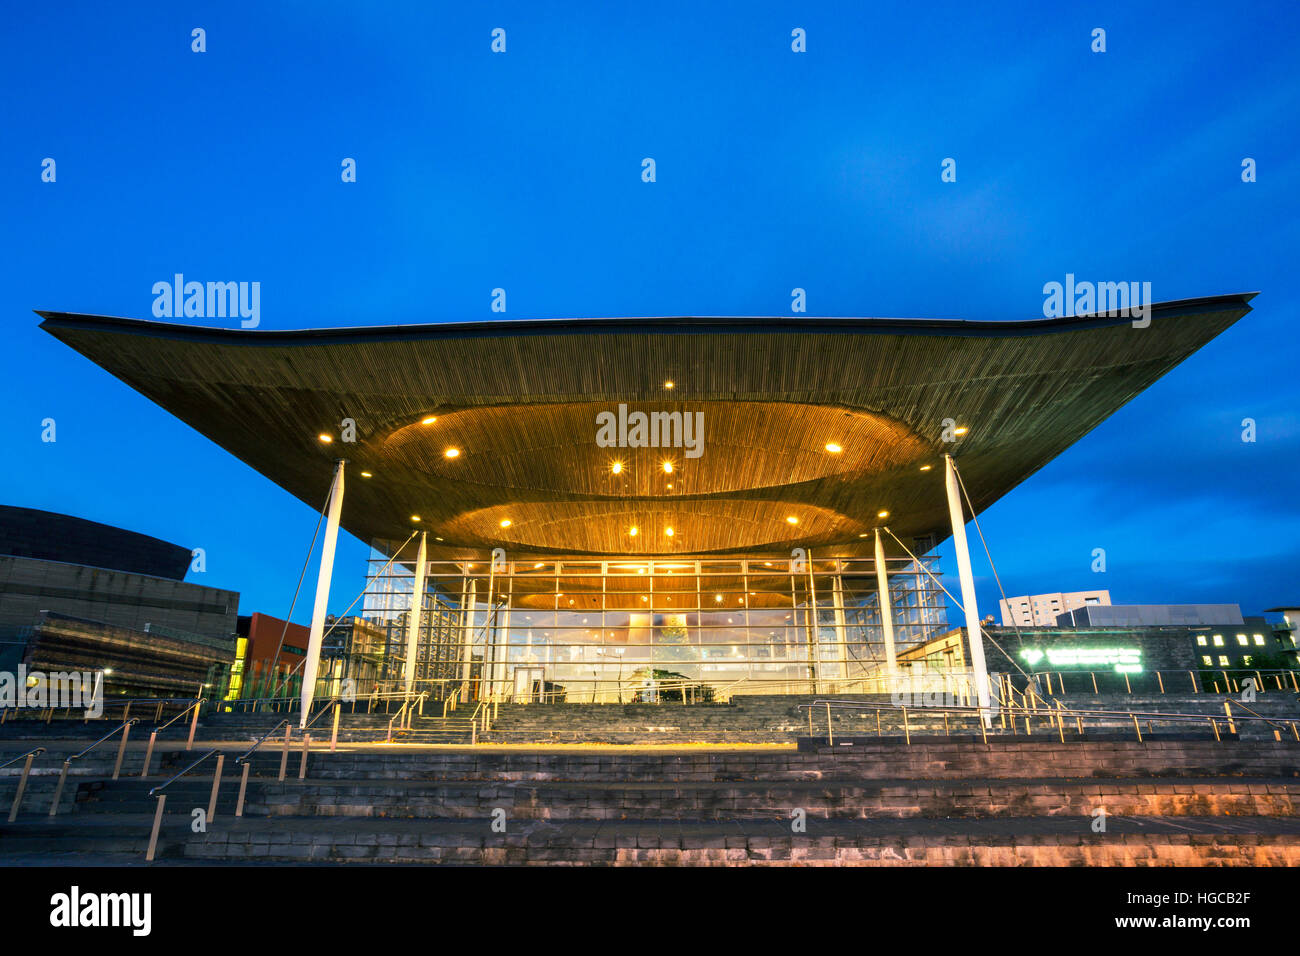 National Assembly for Wales, Night, The Senedd, Cardiff Bay, Cardiff, Wales, UK Stock Photo